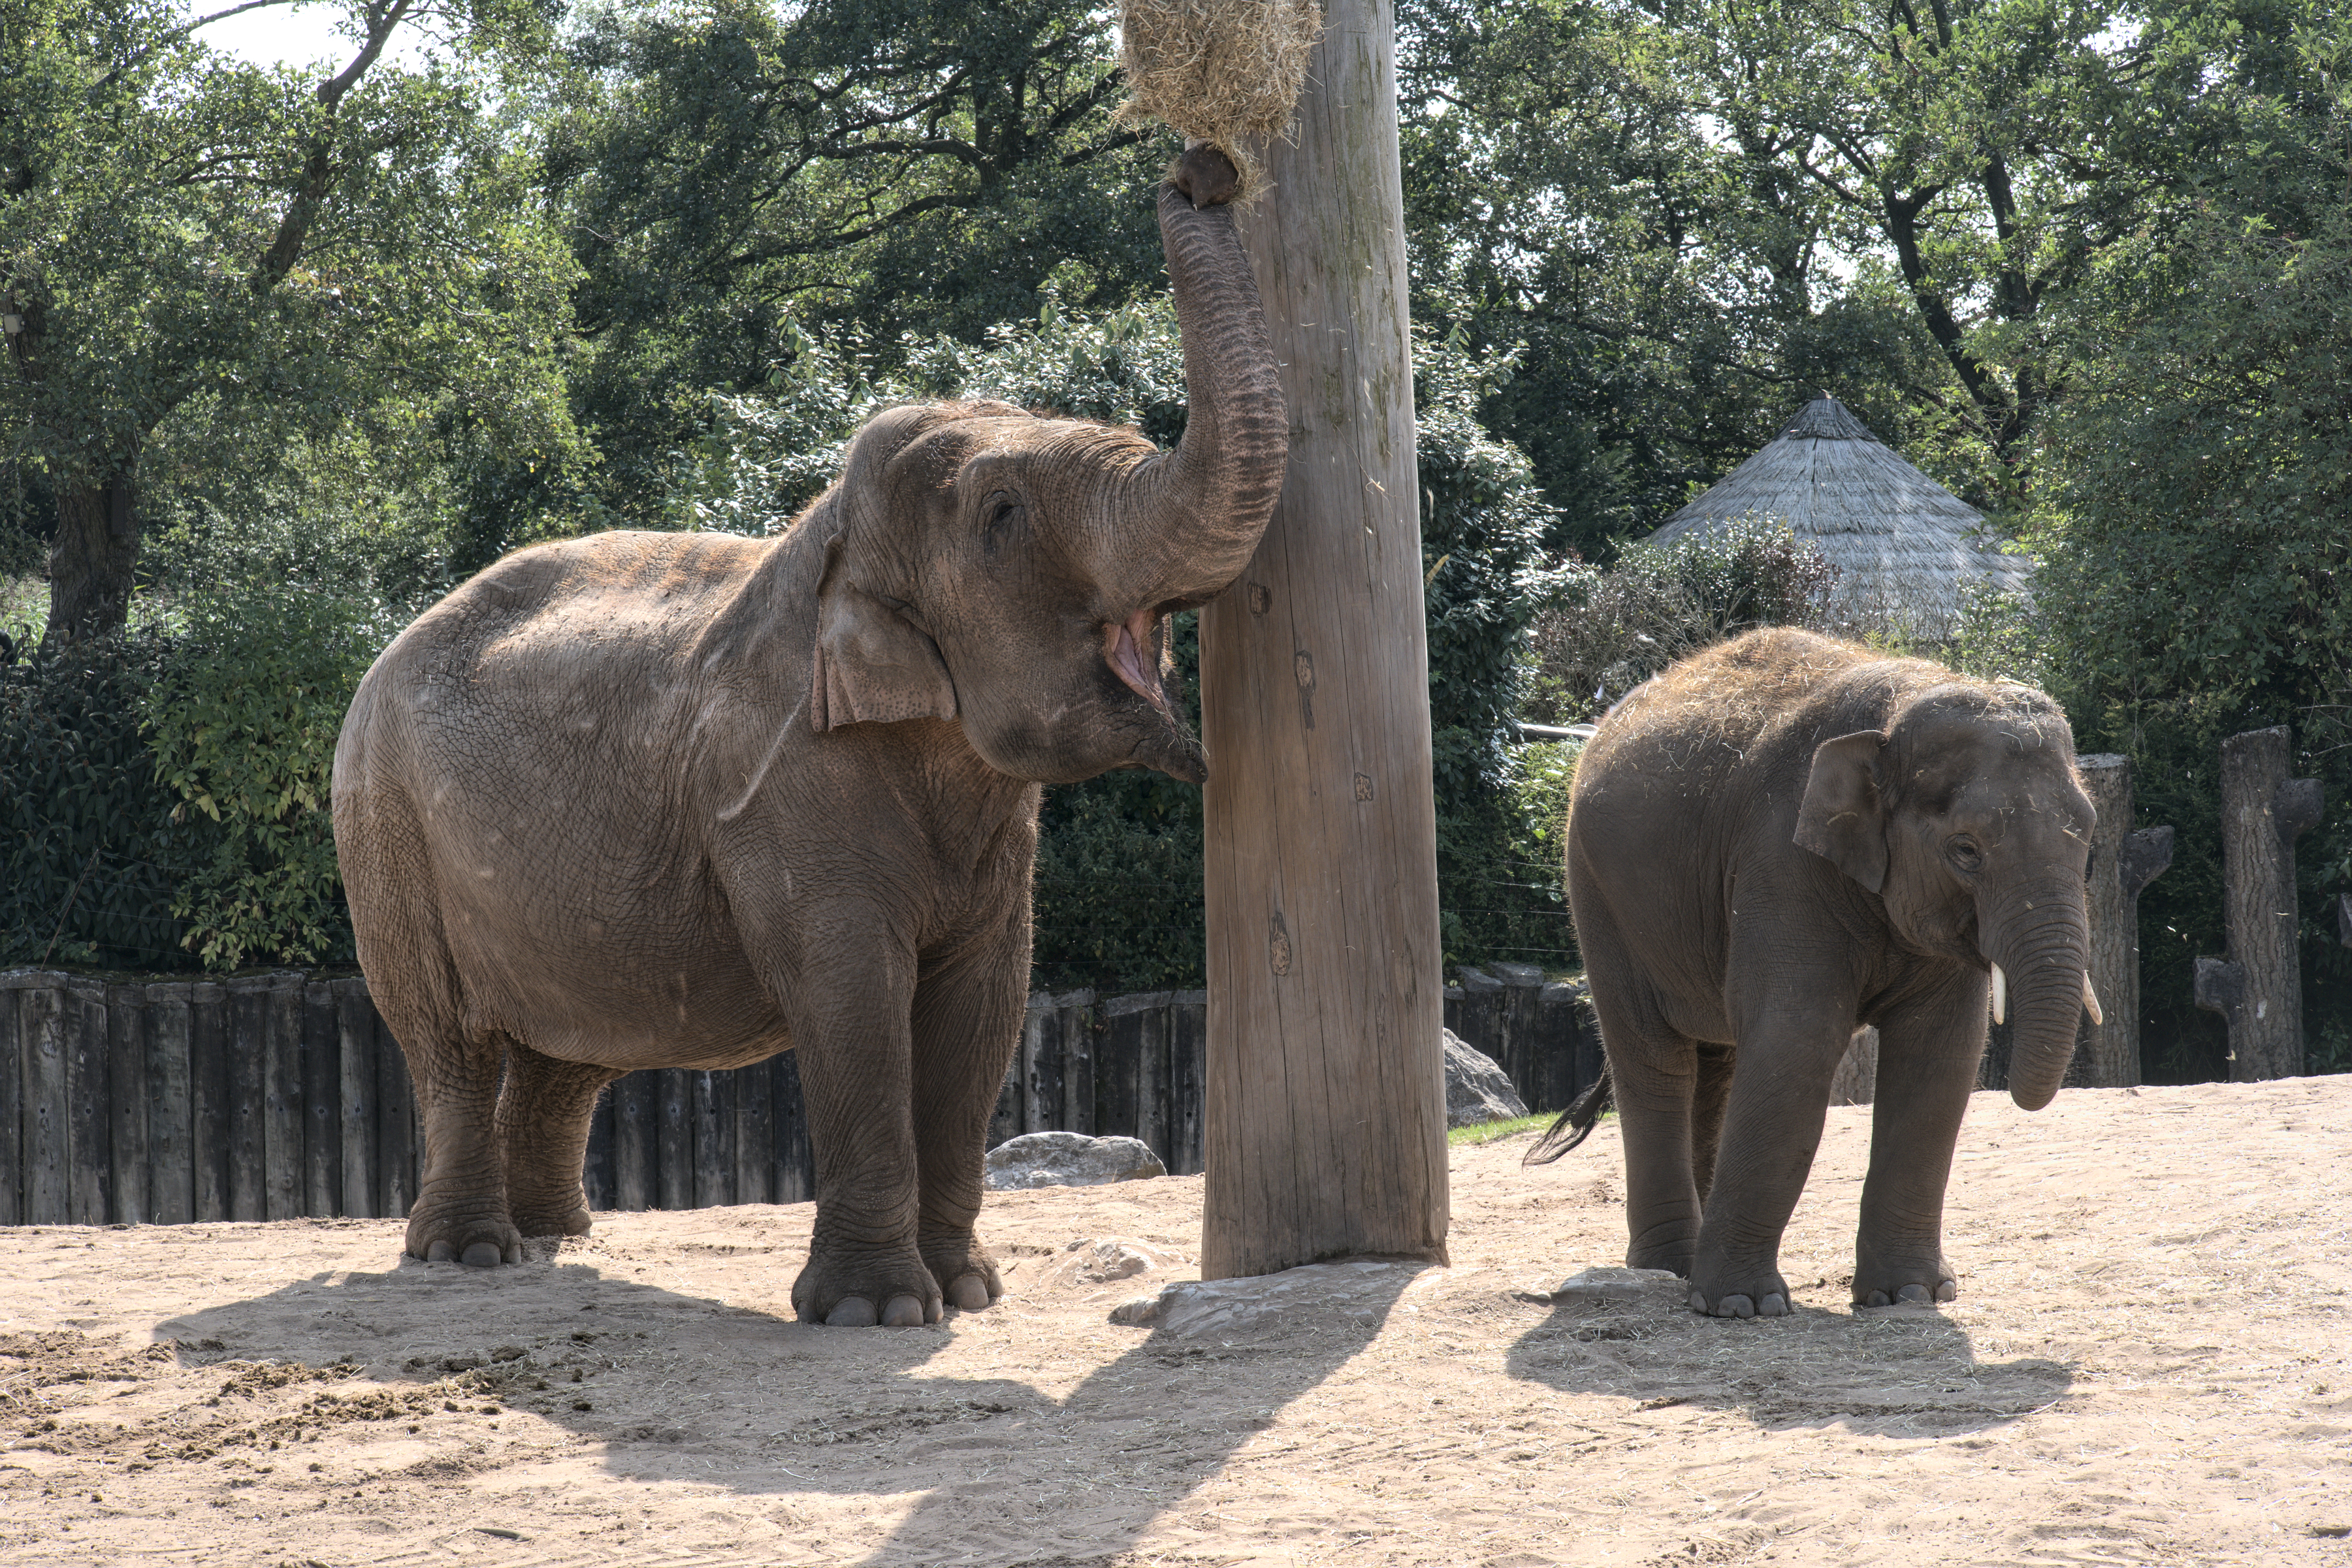 Elephants Chester Zoo 2 Low Res_1001272.jpg